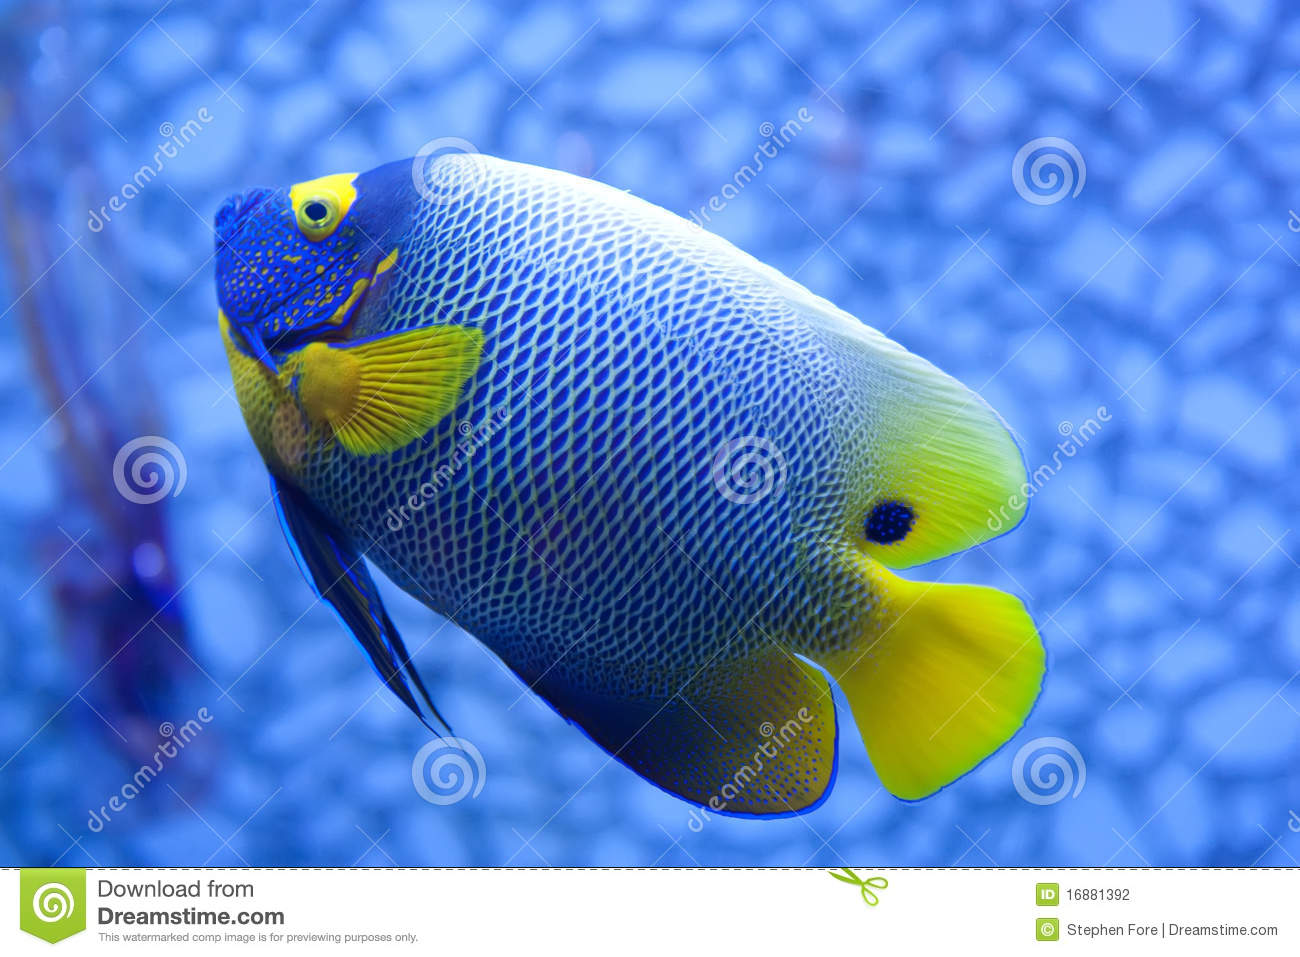 Tropical fish stock photo image of fish blue yellow for Image of fish